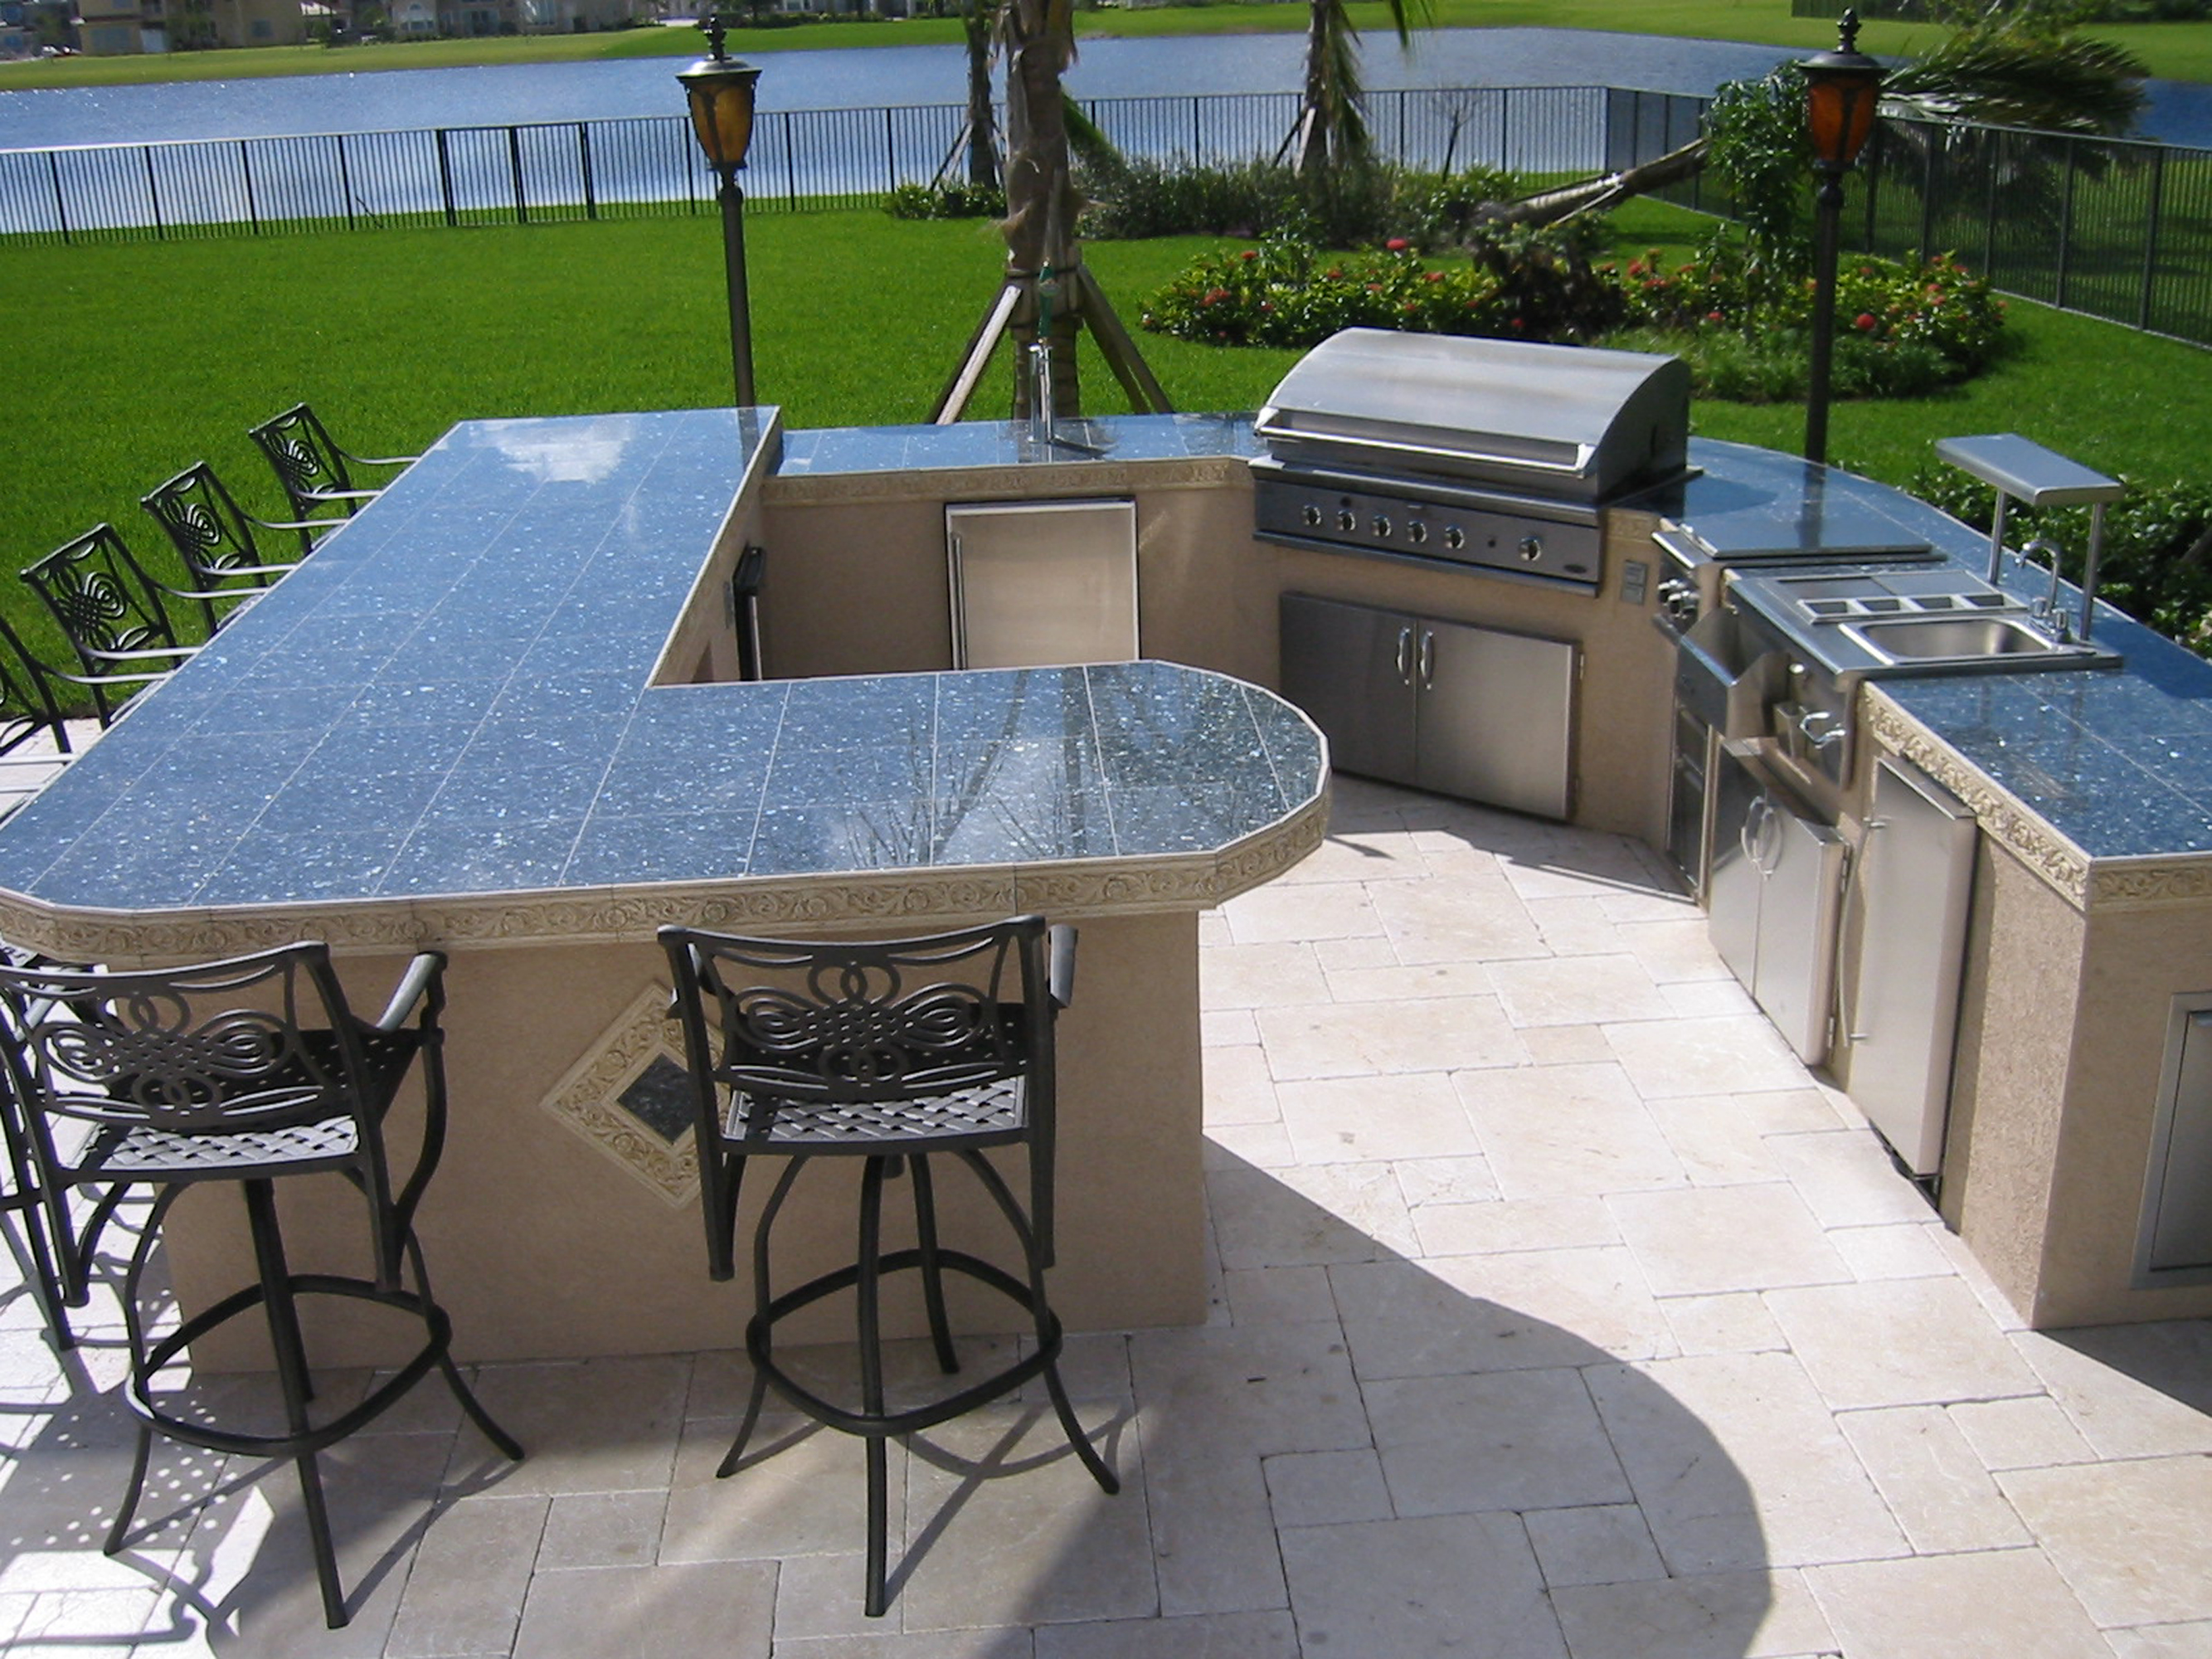 Custom Outdoor Kitchen for School Kids To Learn To Cook ... on Built In Grill Backyard id=75378